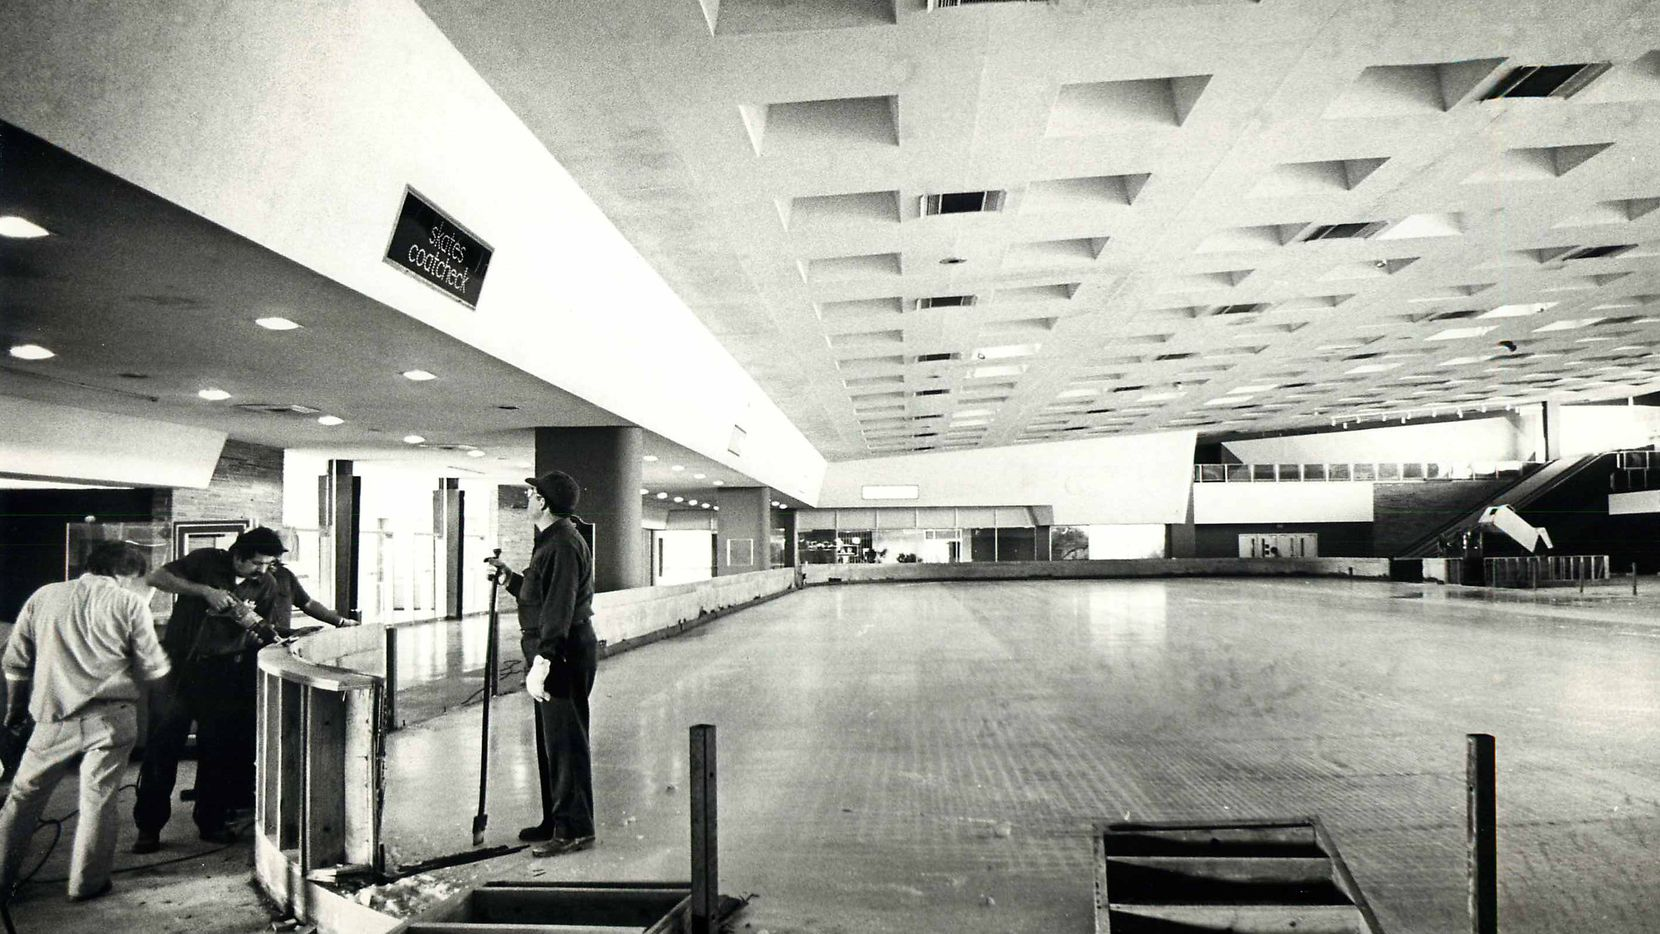 The ice skating arena at Dallas Love Field shown in a 1979 file photo